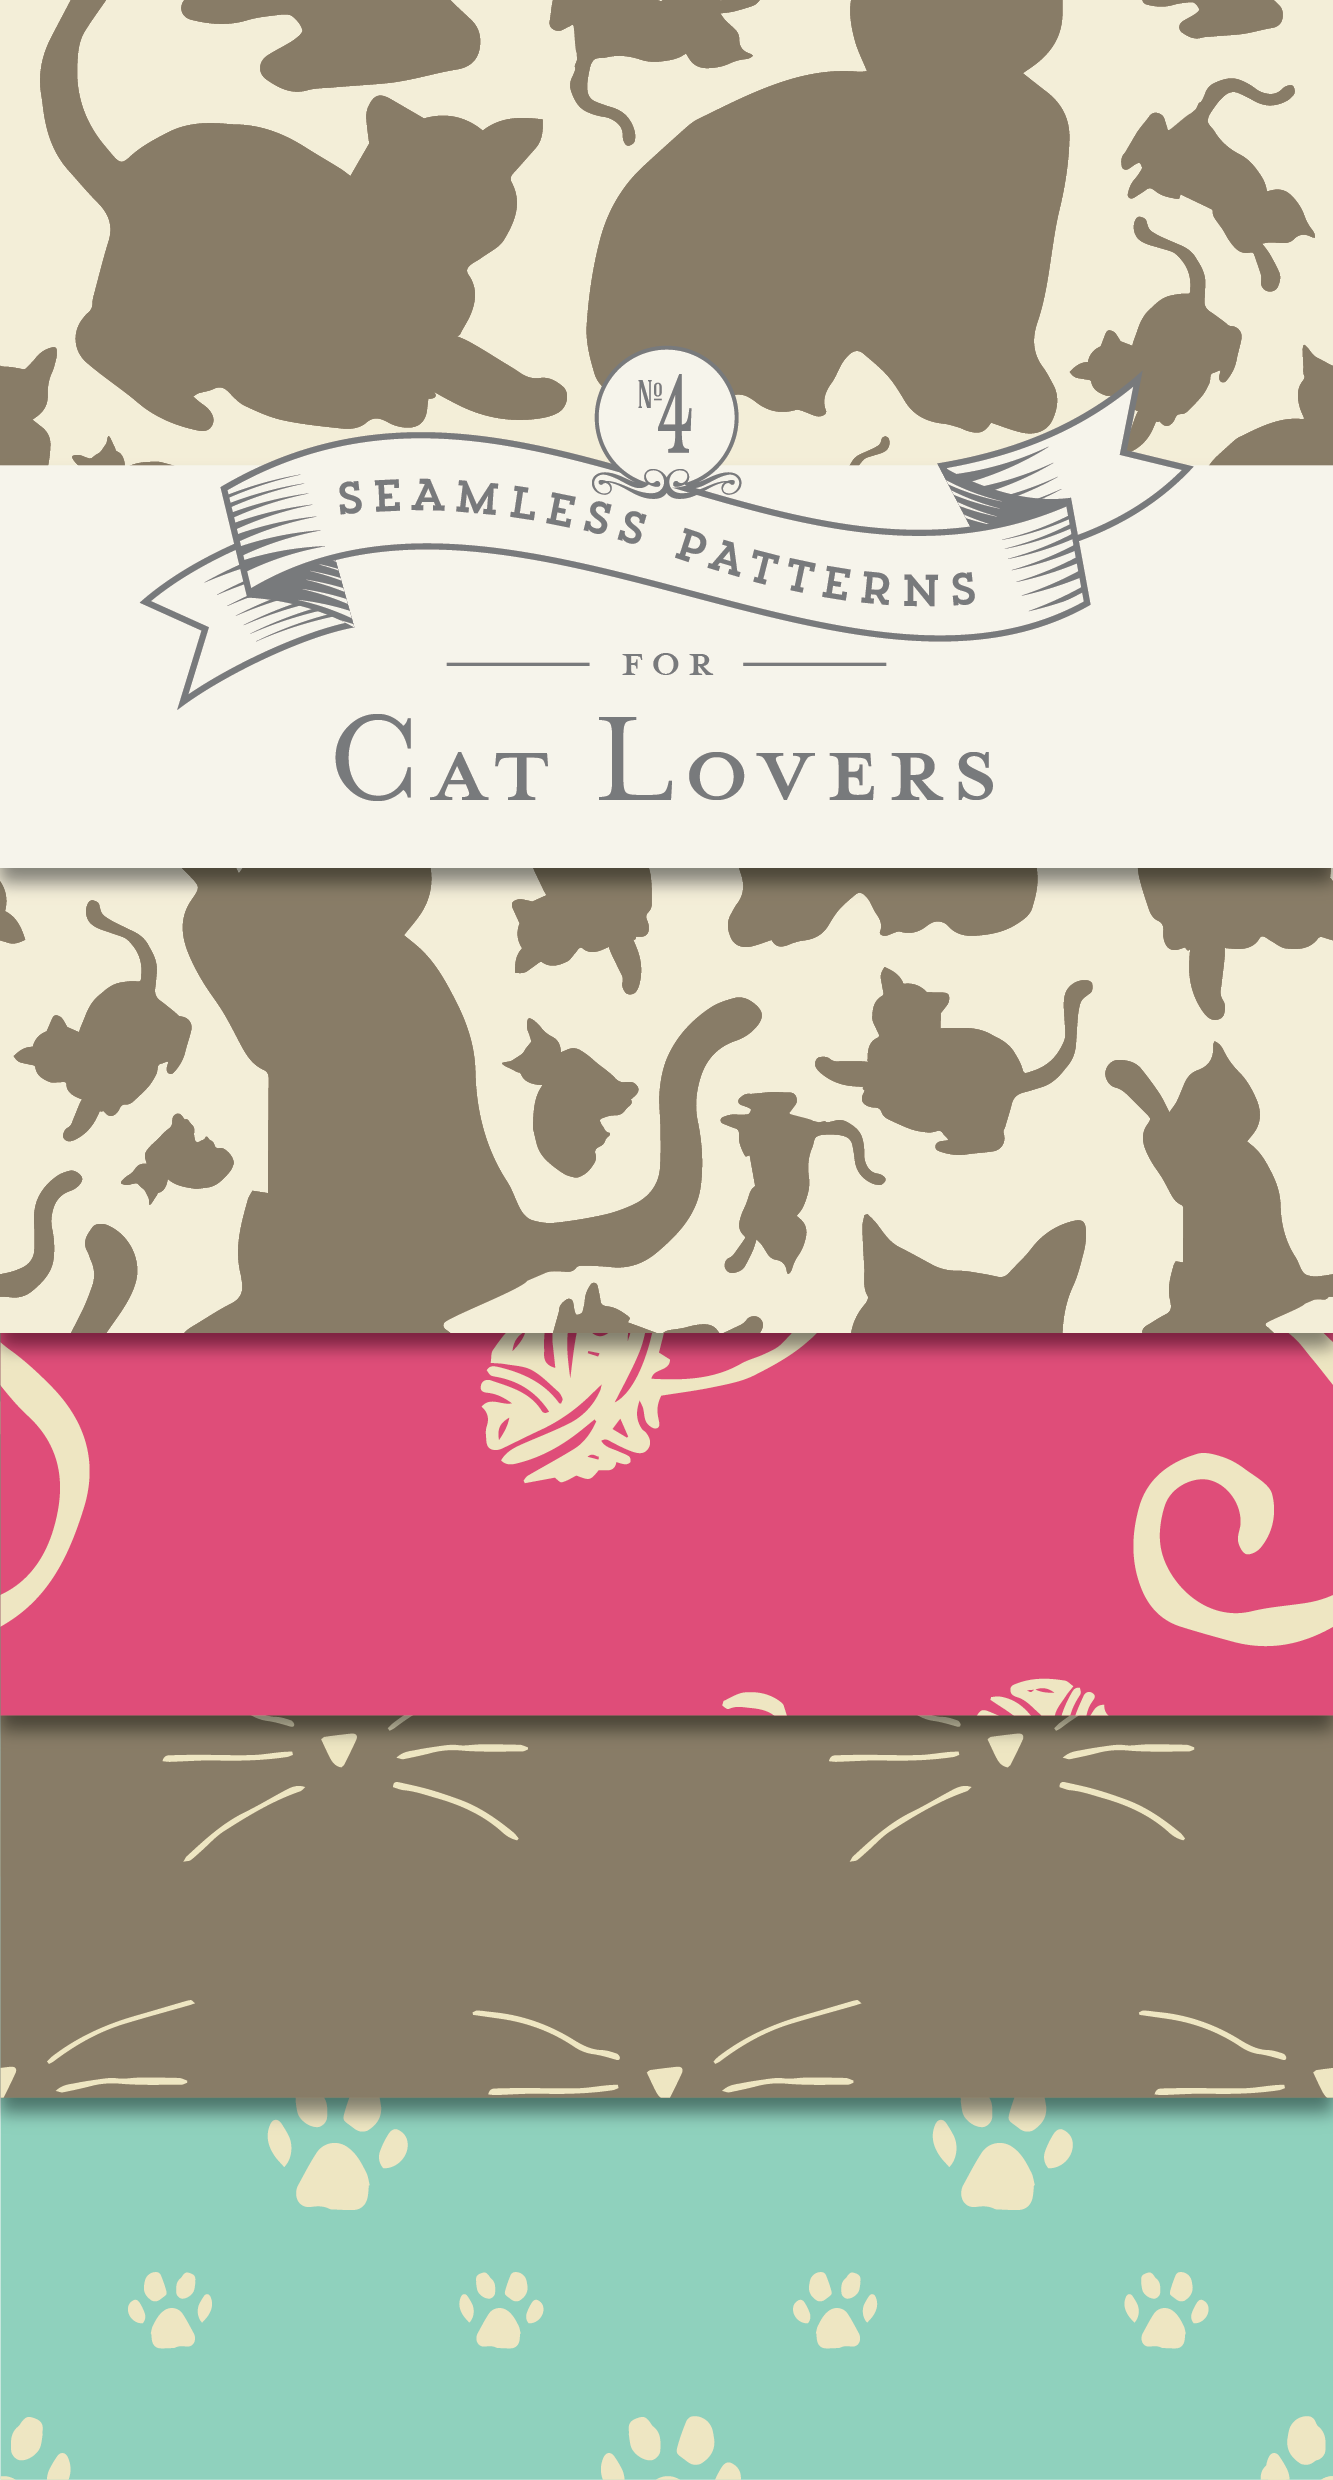 Patterns for Cat Lovers